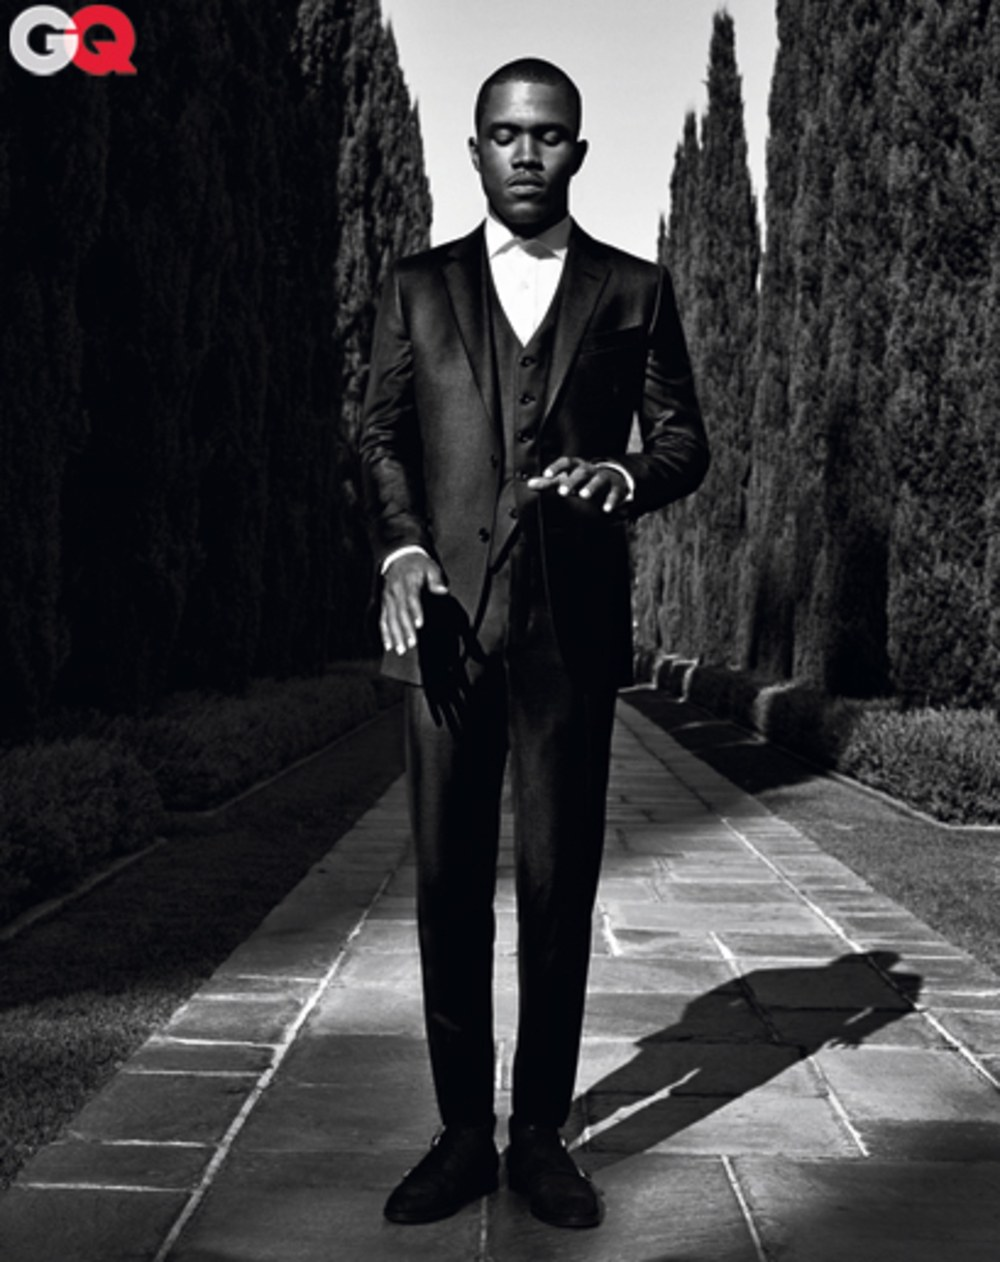 entertainment-2011-12-MOTY-ss-frank-ocean-outtake.jpg